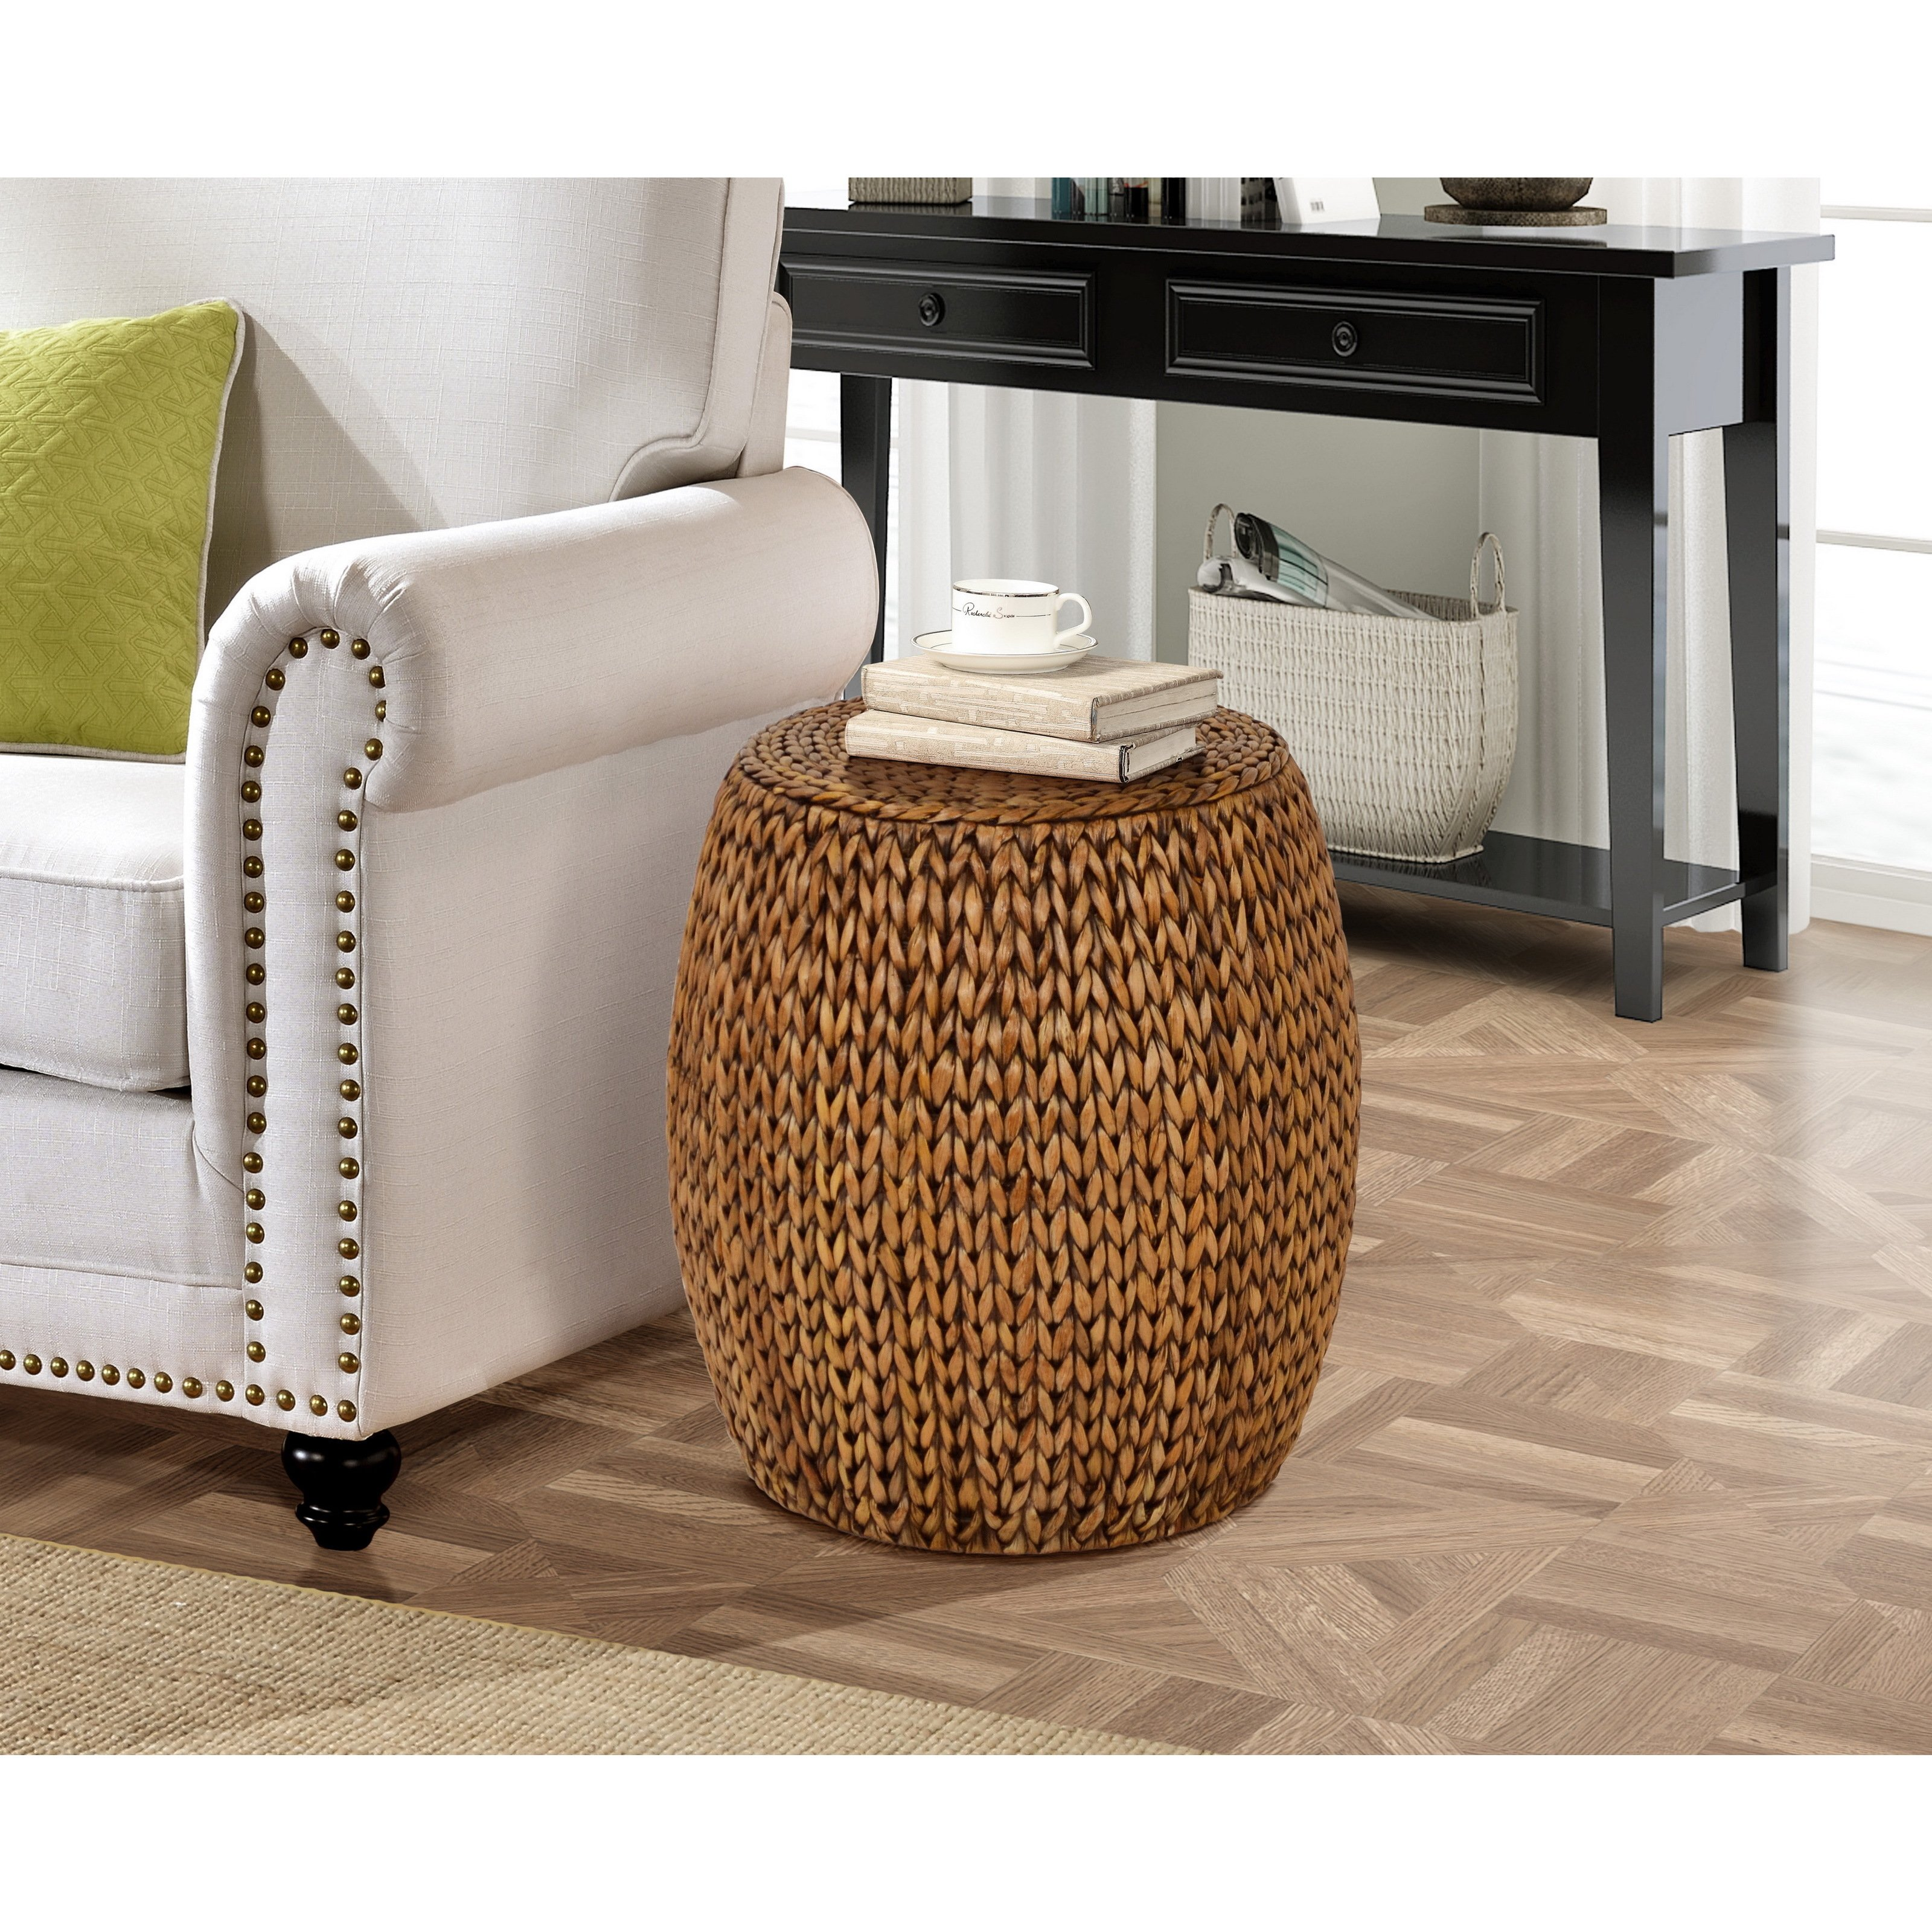 gallerie decor tall drum accent table free shipping today wood folding snack reclaimed kitchen mirrored desk target cloth decoration pier one candles outdoor iron side round